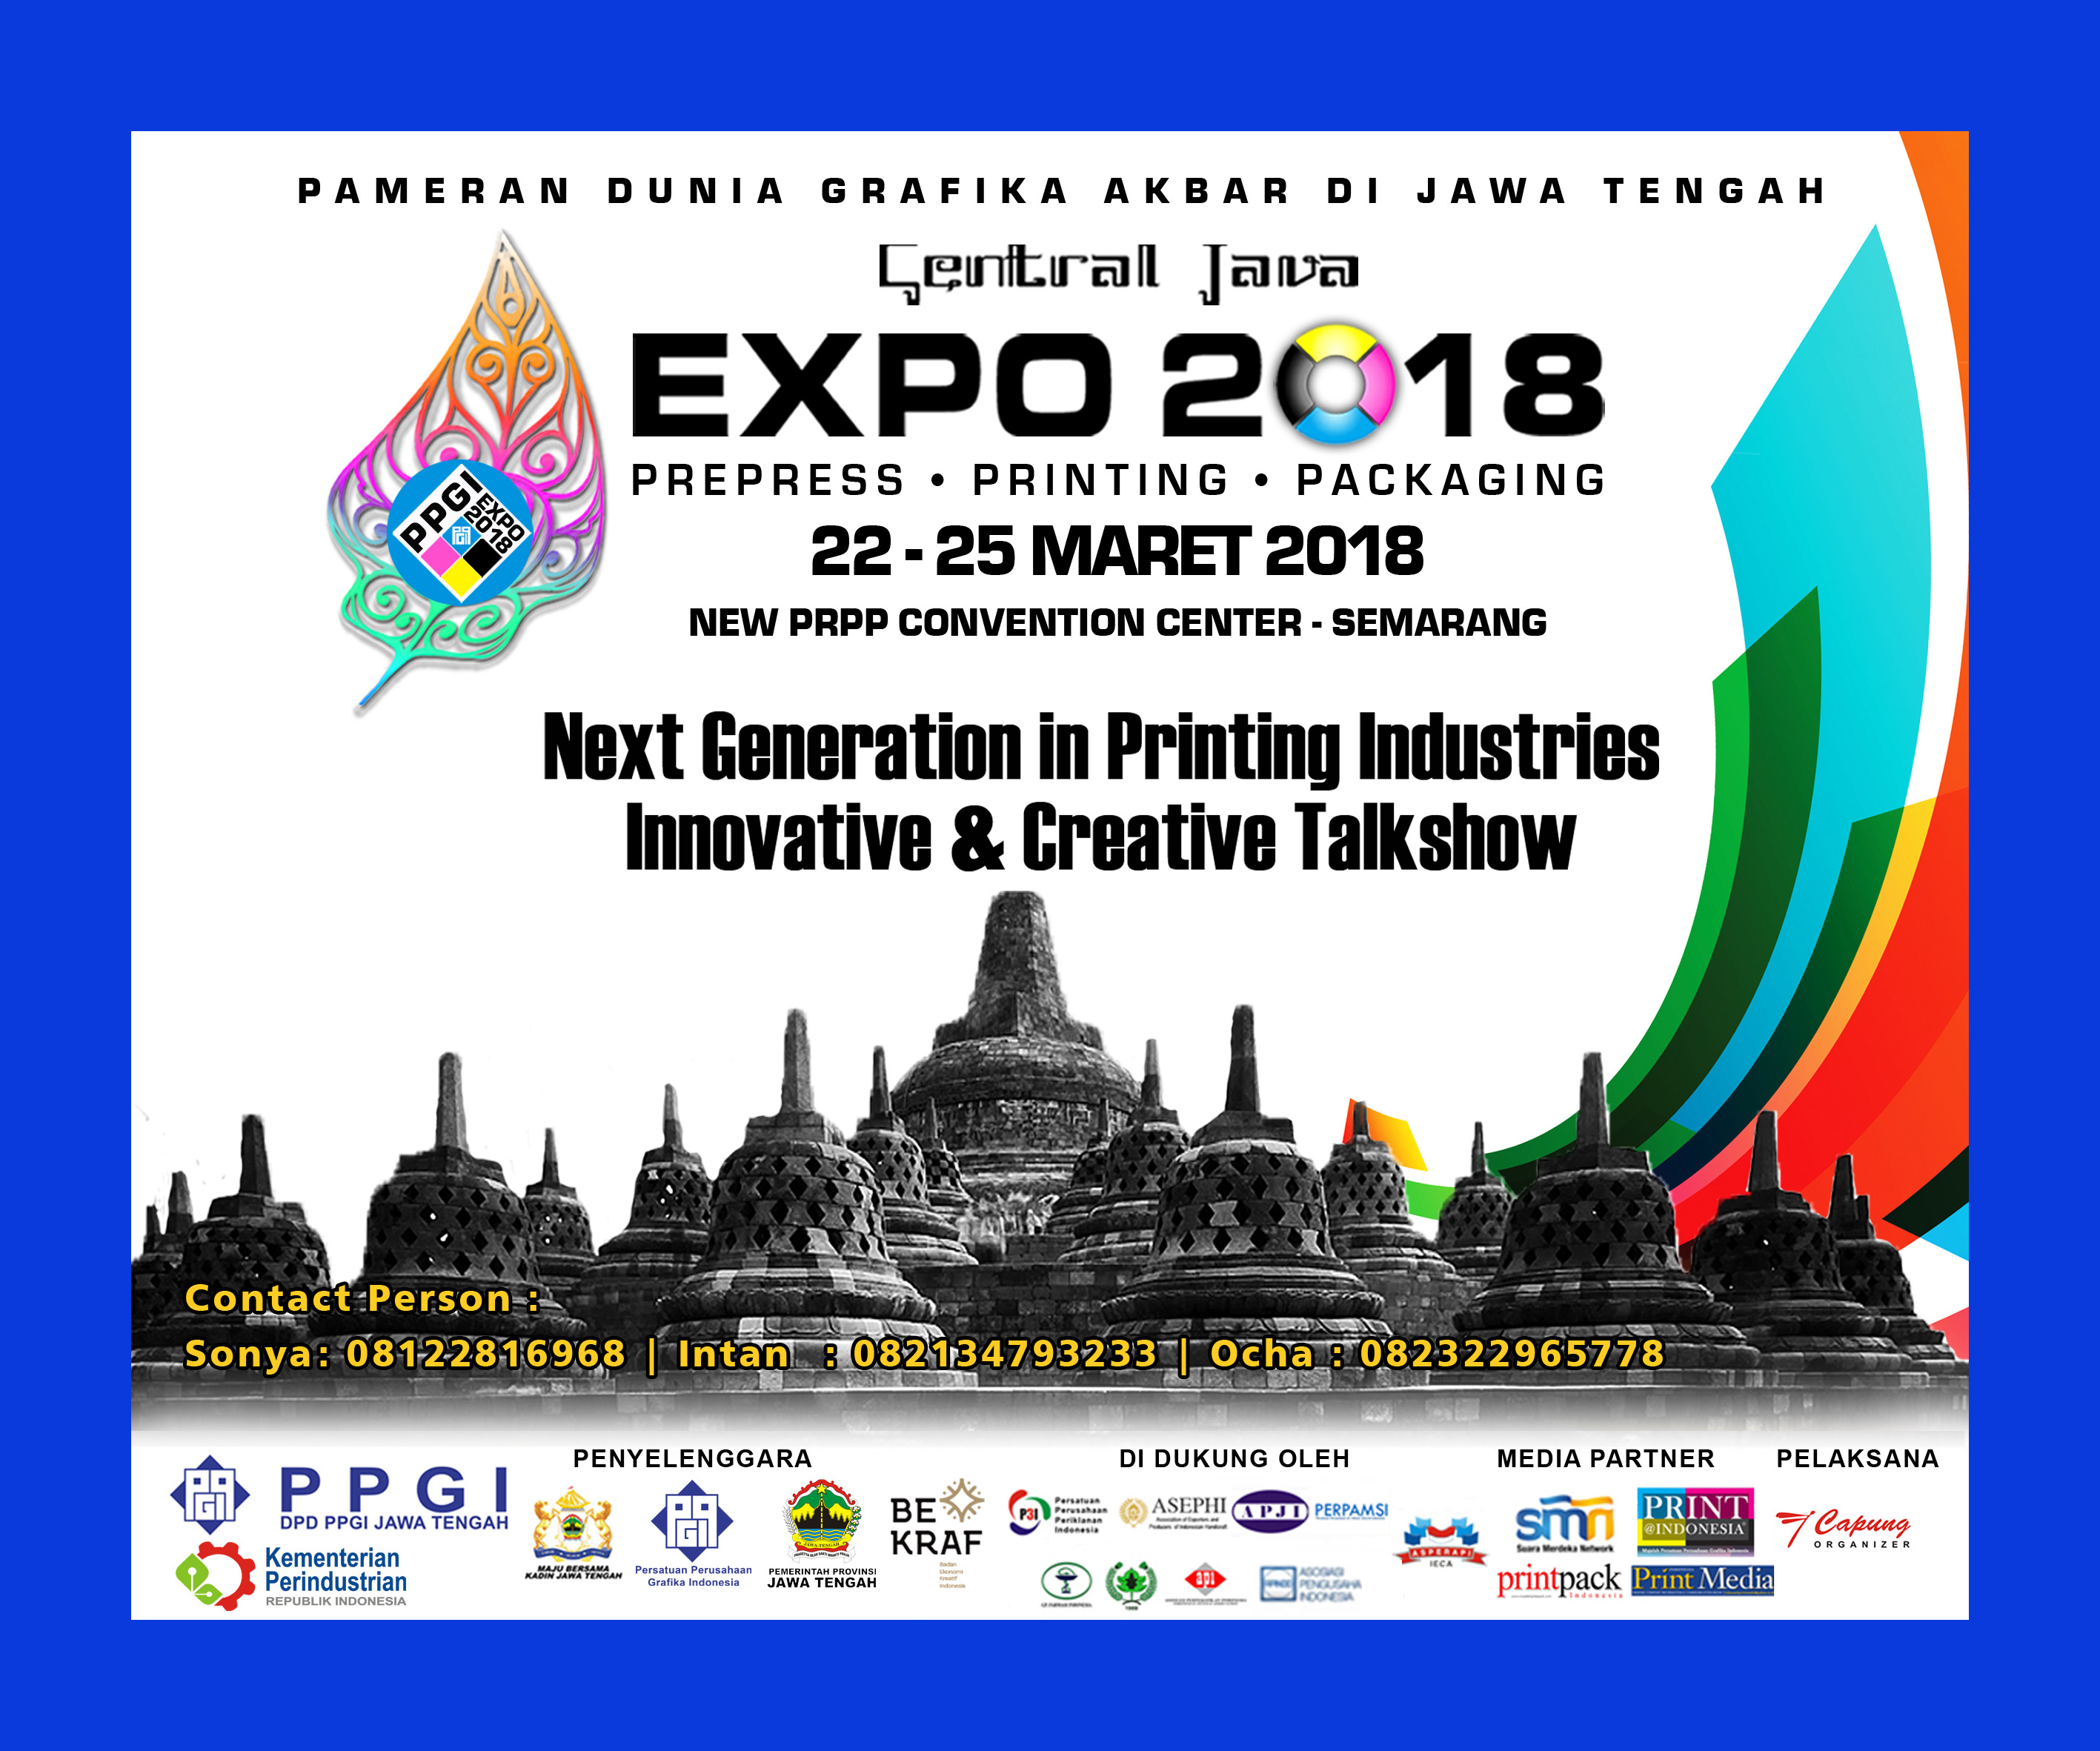 CENTRAL JAVA EXPO 2018